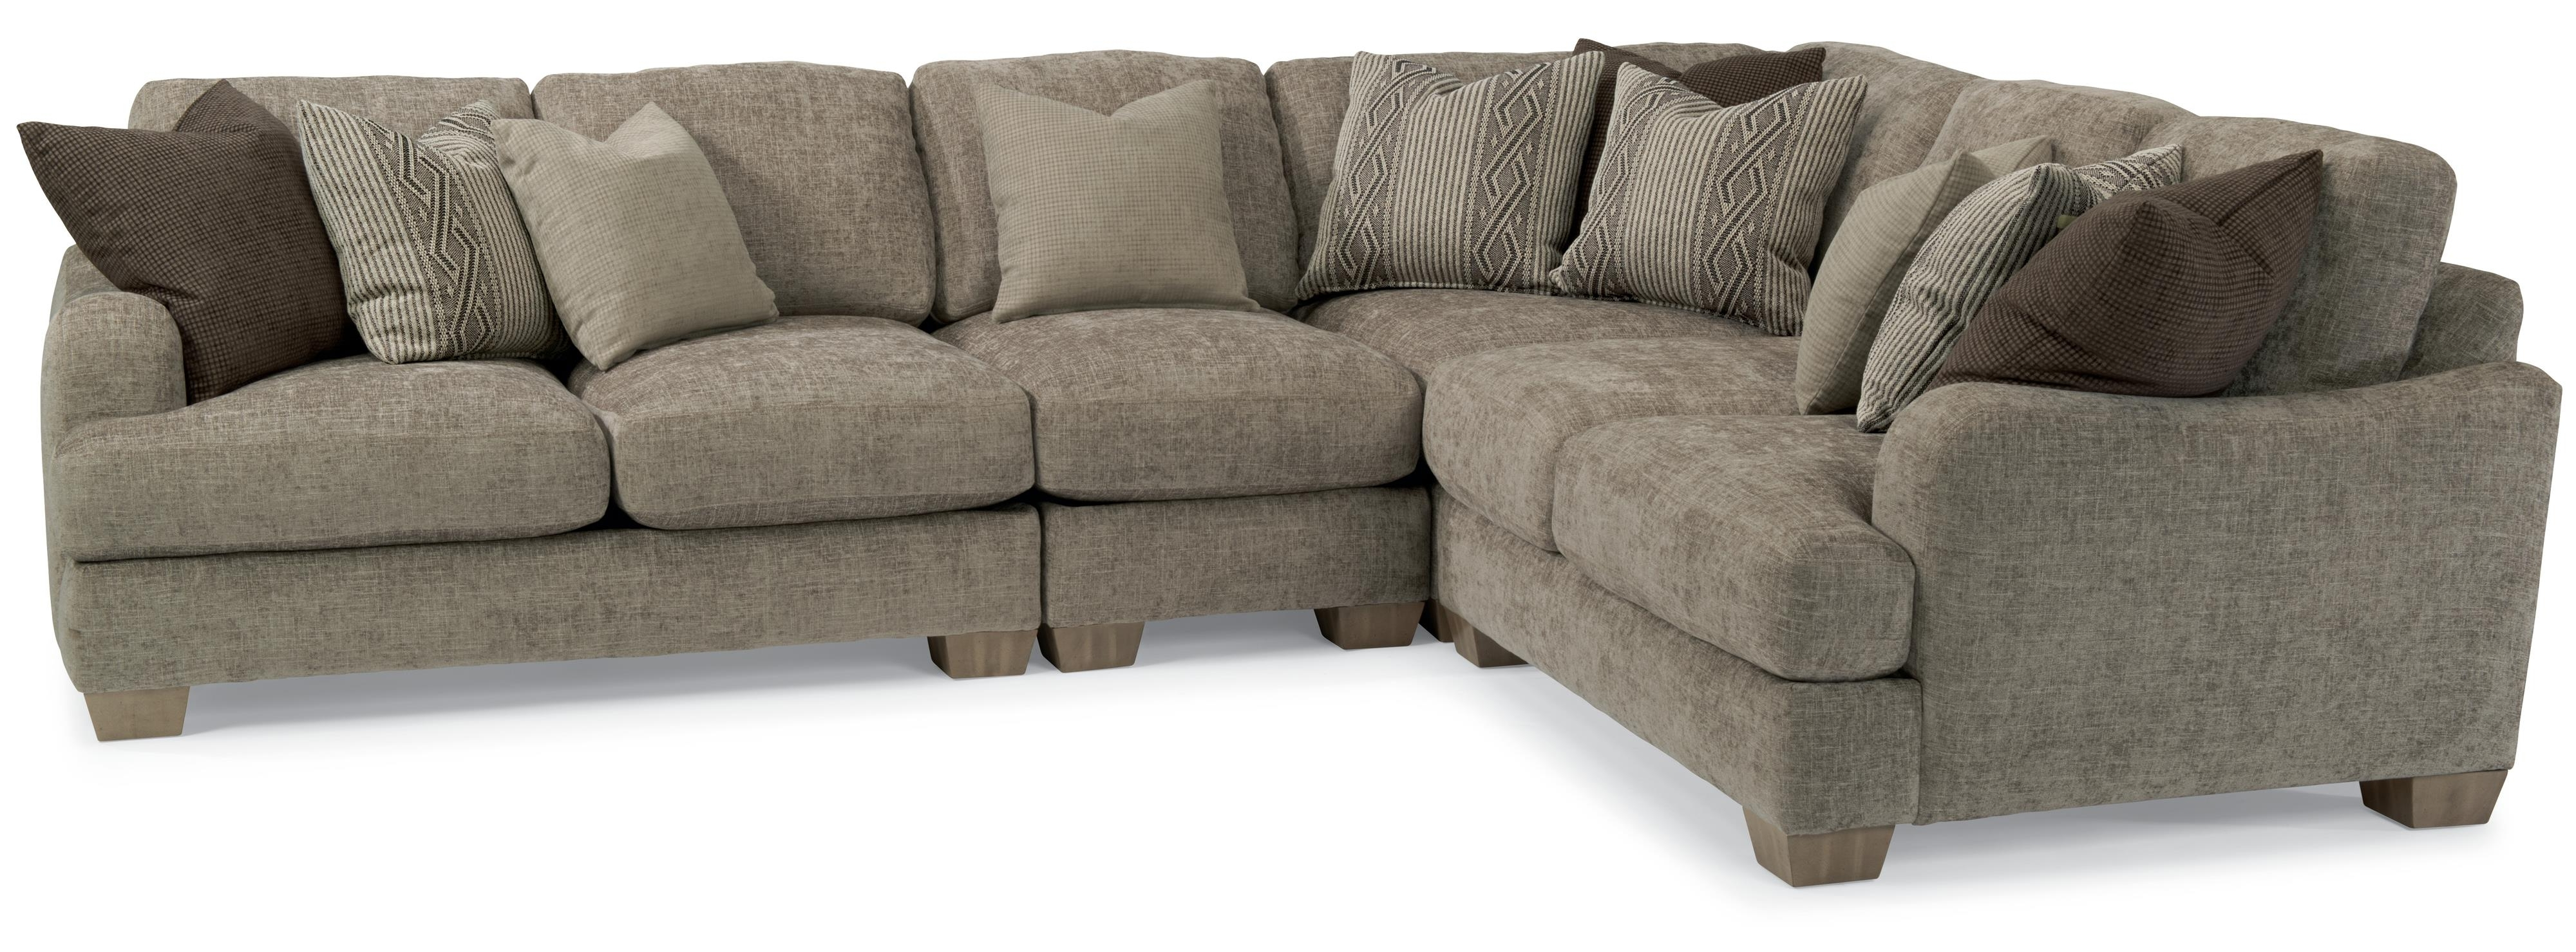 Vanessa Sectional Sofa With Loose Pillow Backflexsteel with Fashionable Kansas City Sectional Sofas